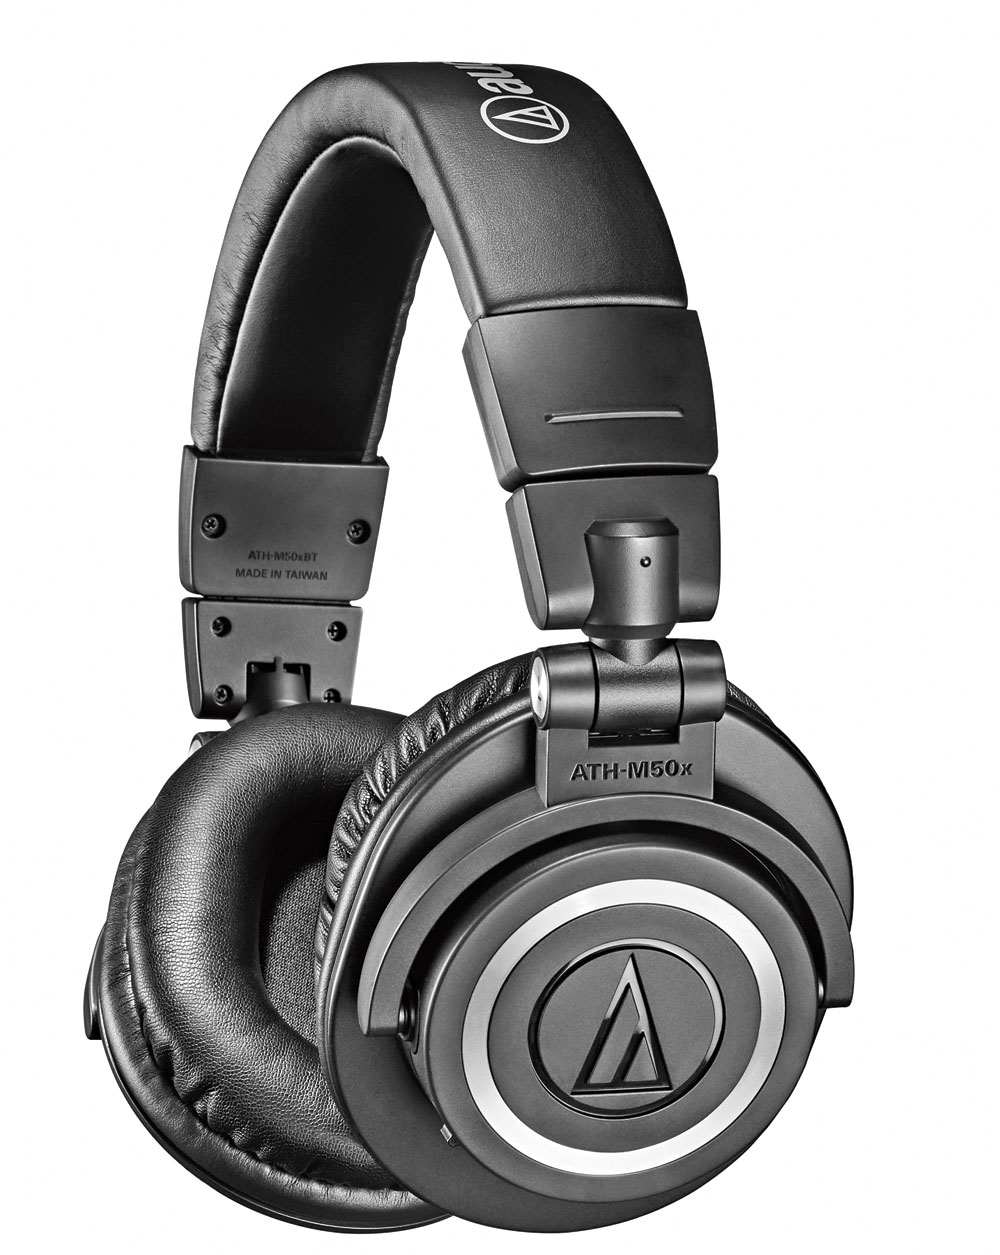 The Audio Technica ATH-M50xBT